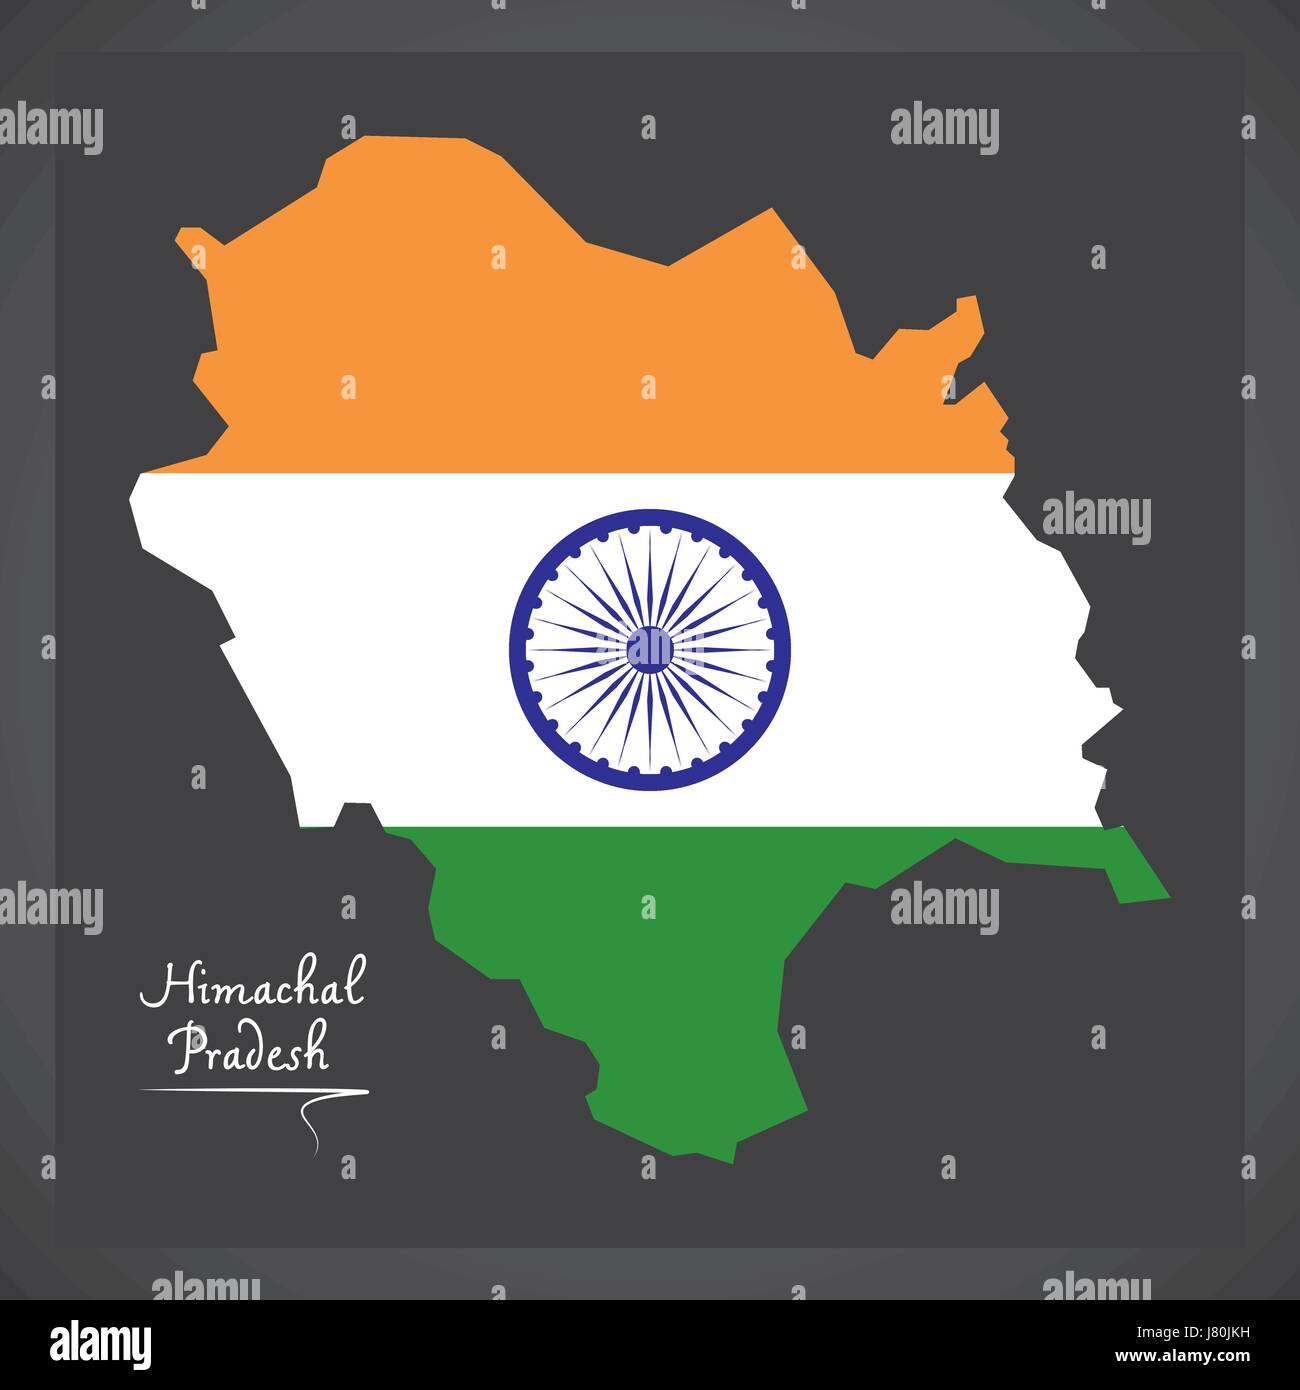 Himachal Pradesh map with Indian national flag illustration - Stock Vector